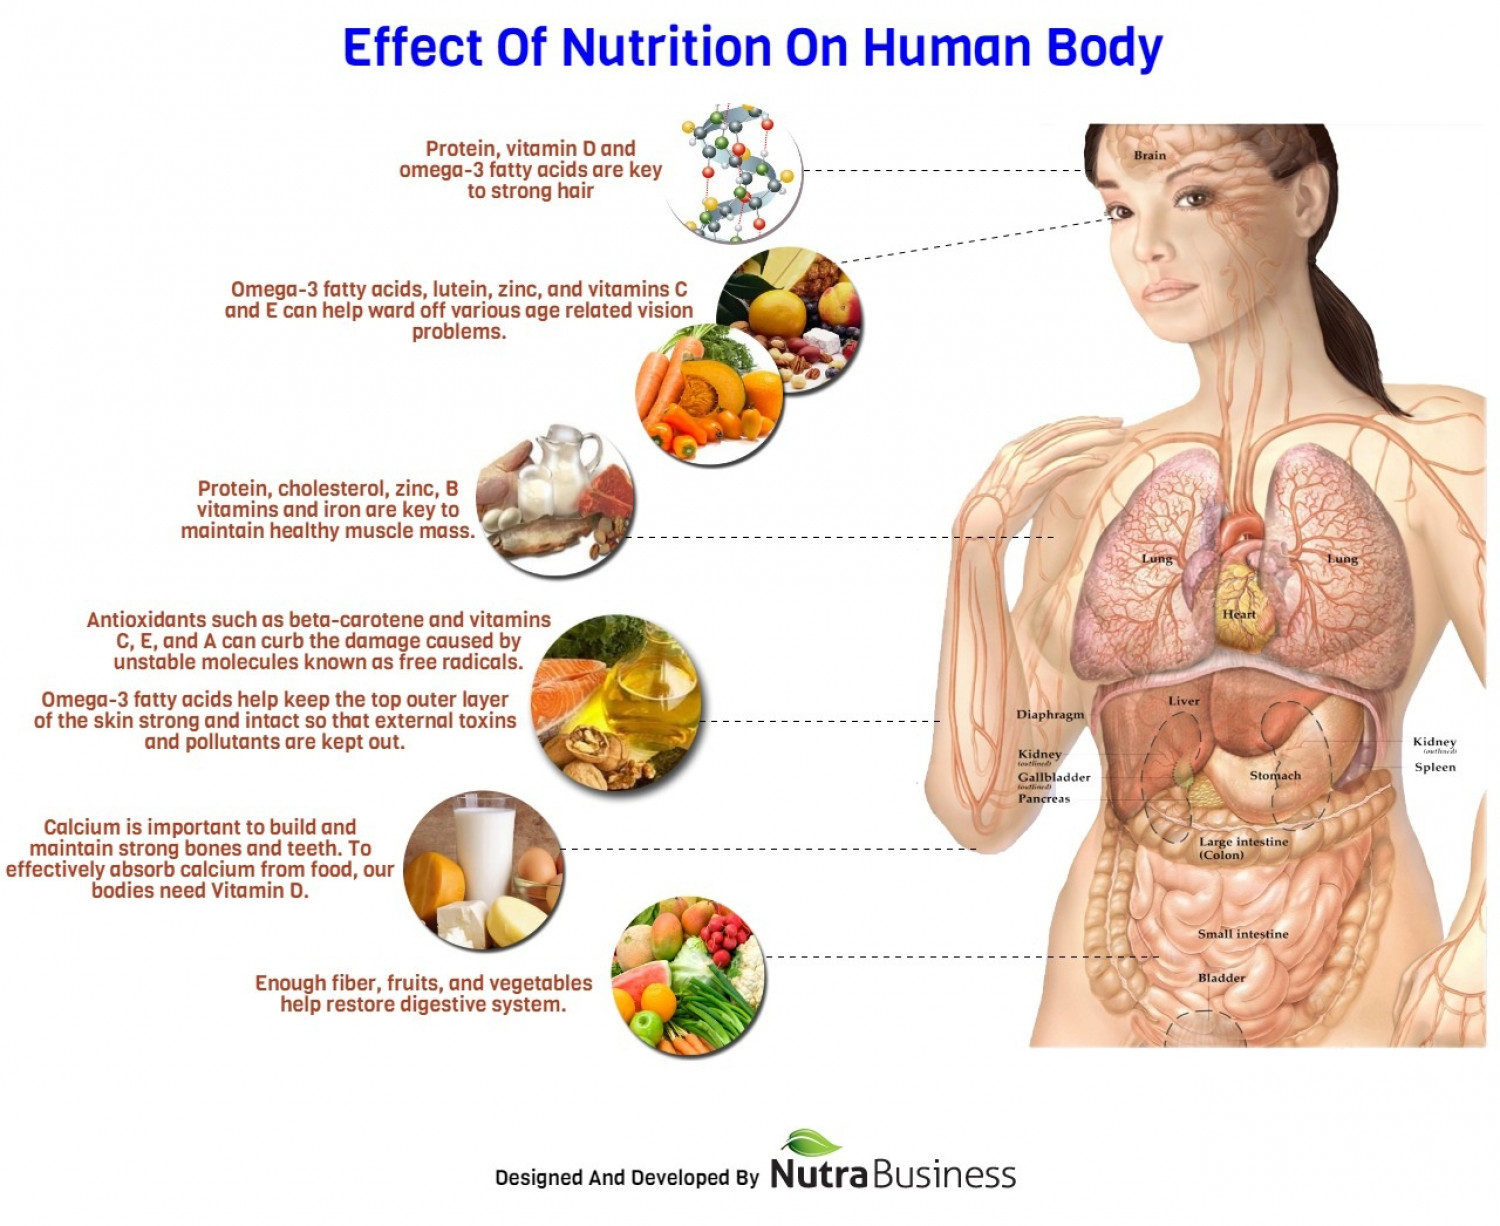 Effect Of Nutrition On Human Body | Visual.ly